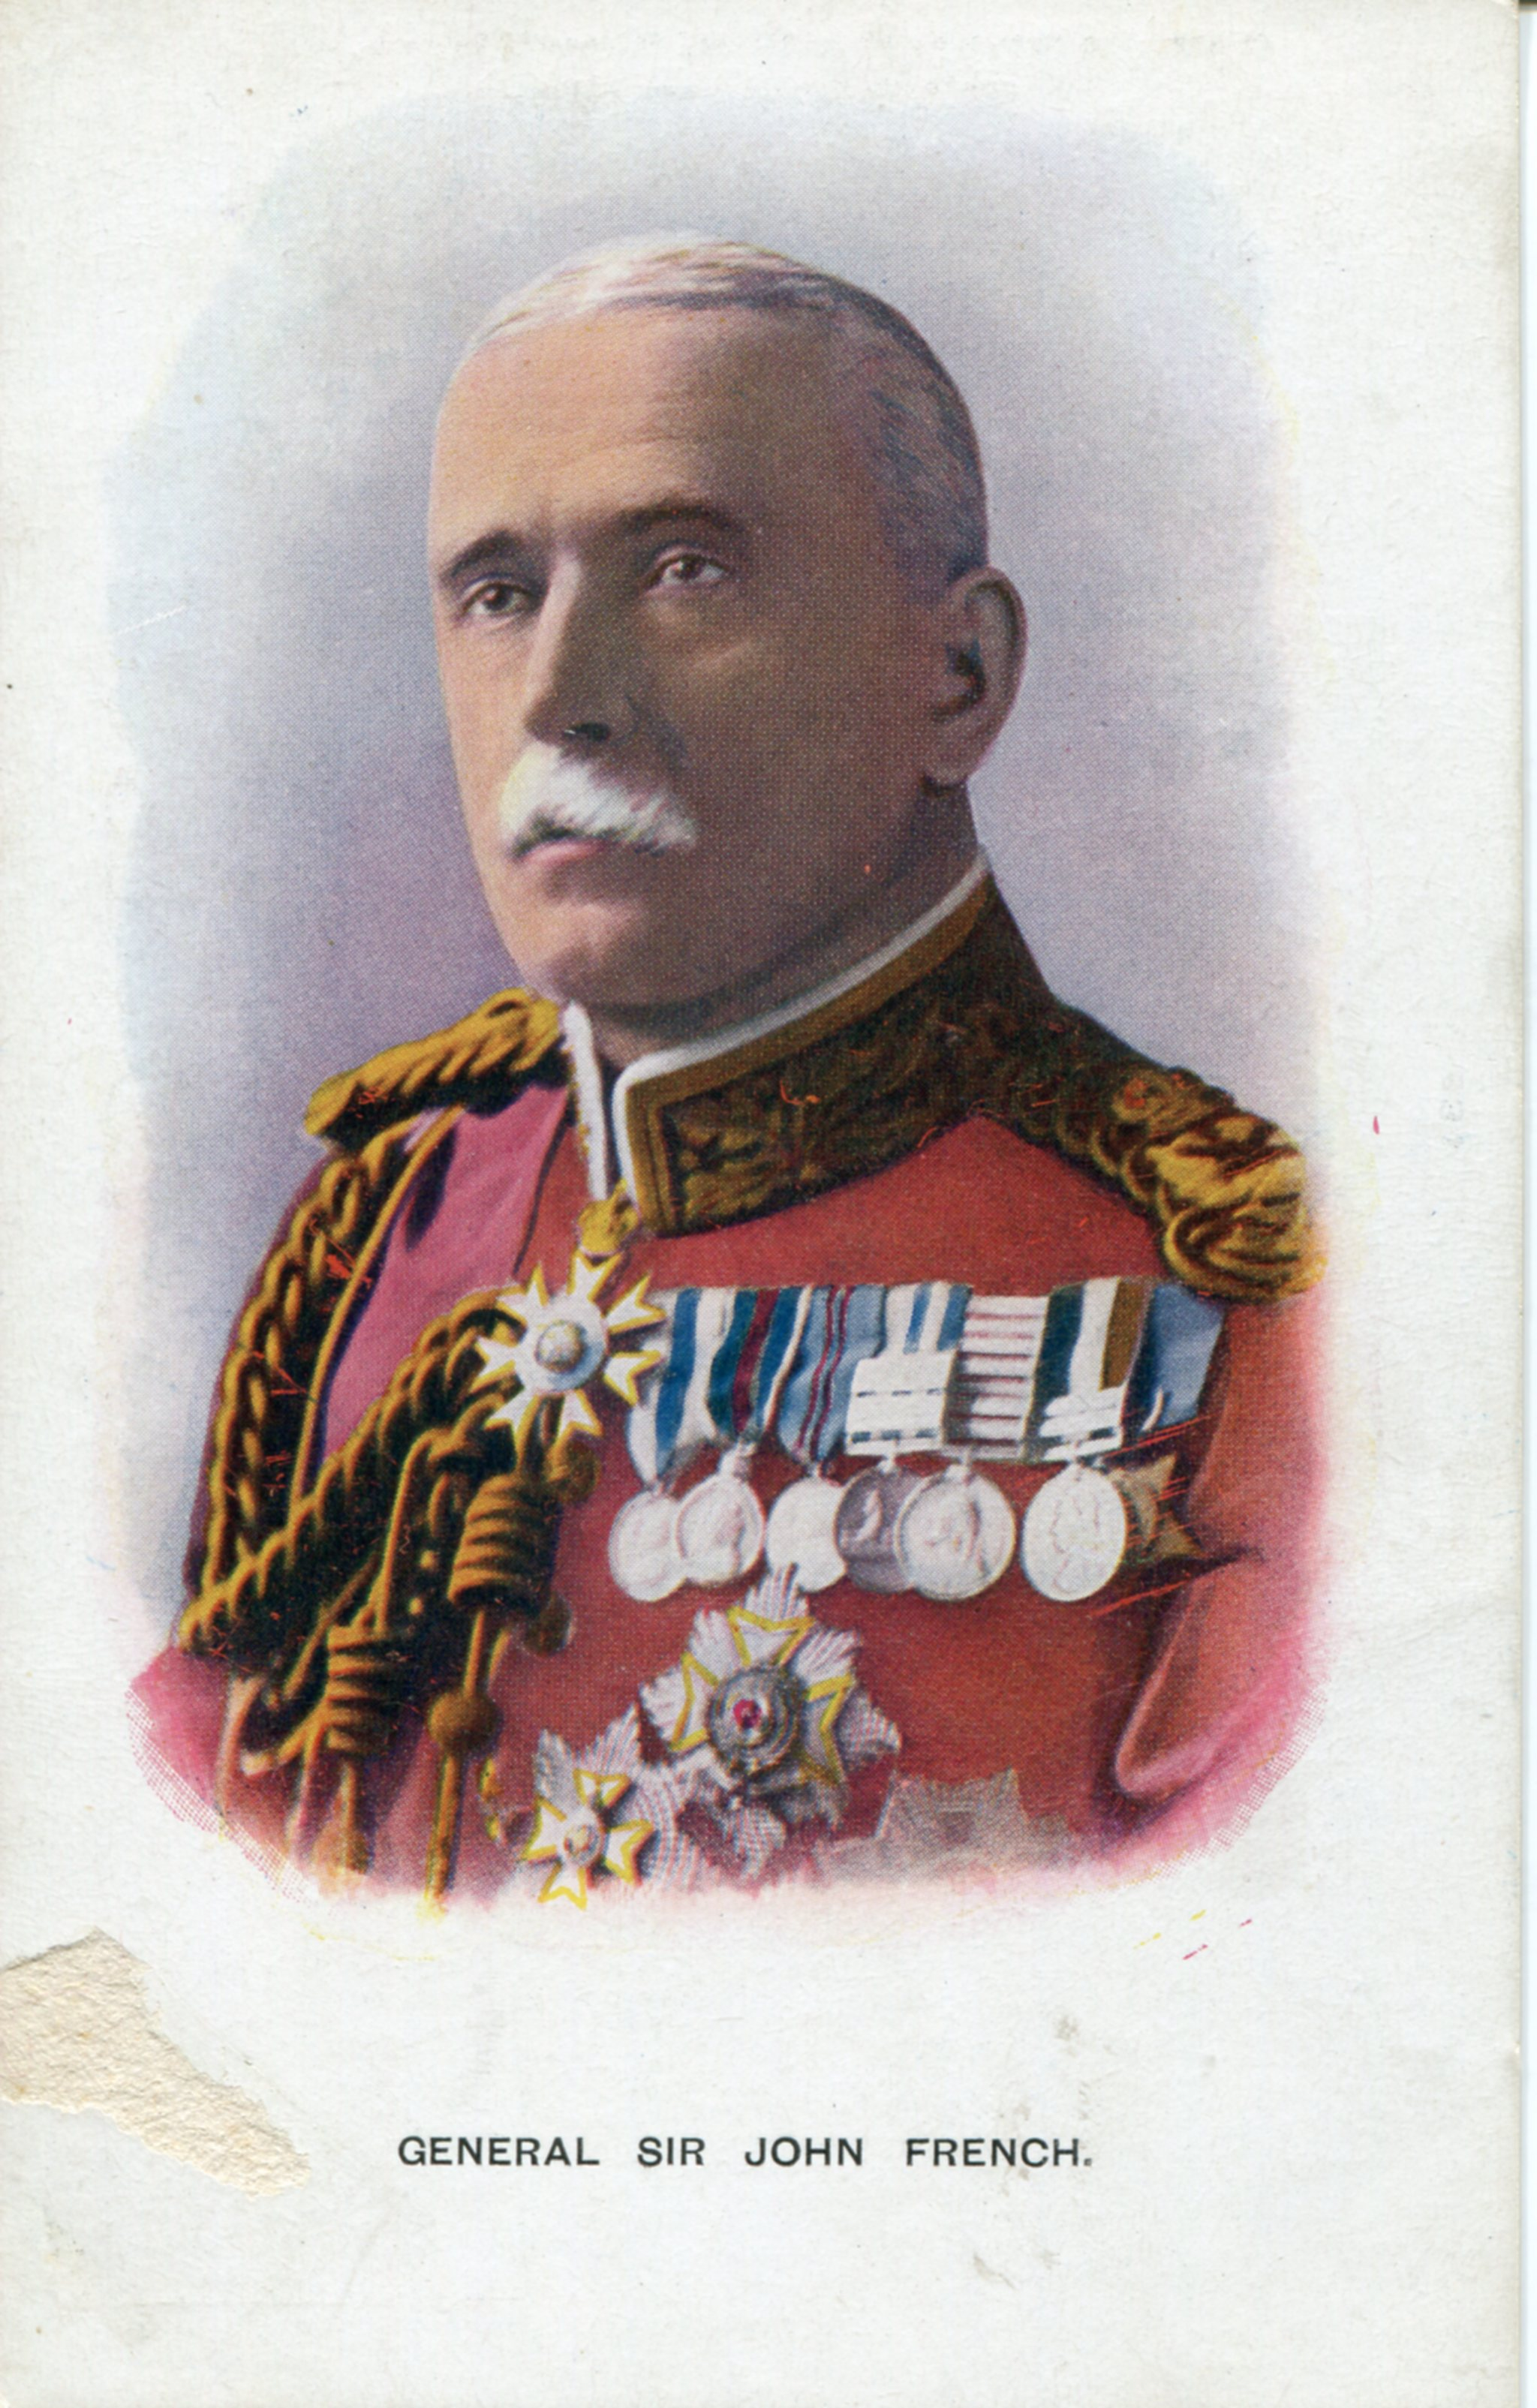 General Sir John French